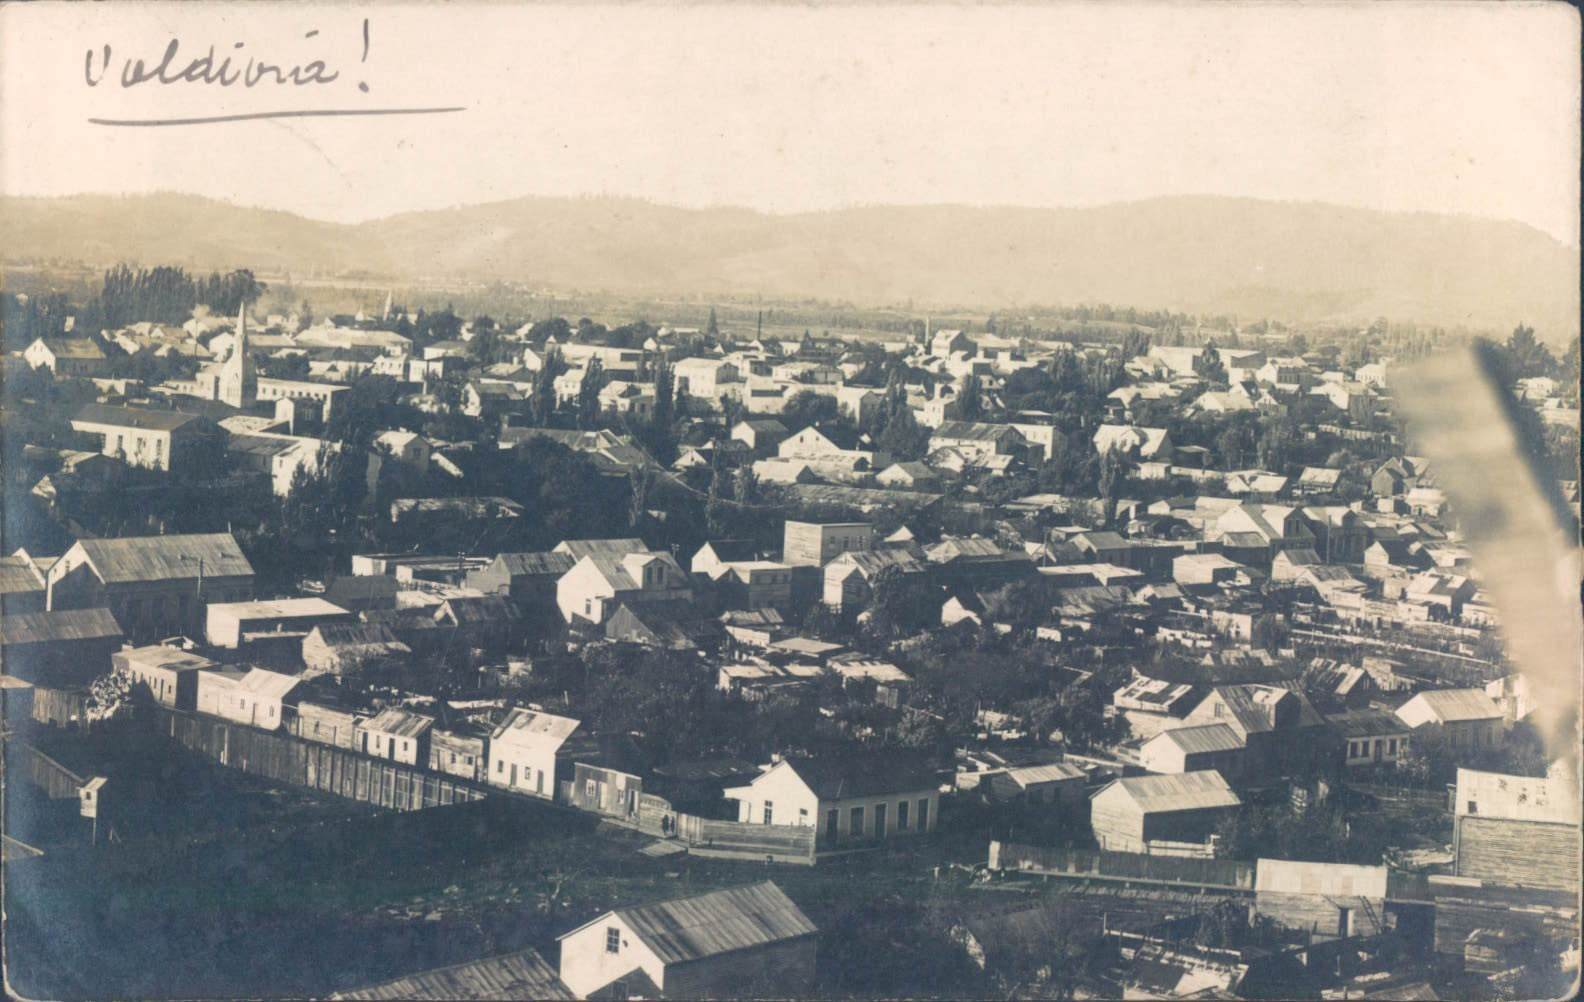 Enterreno - Fotos históricas de chile - fotos antiguas de Chile - Valdivia en 1920